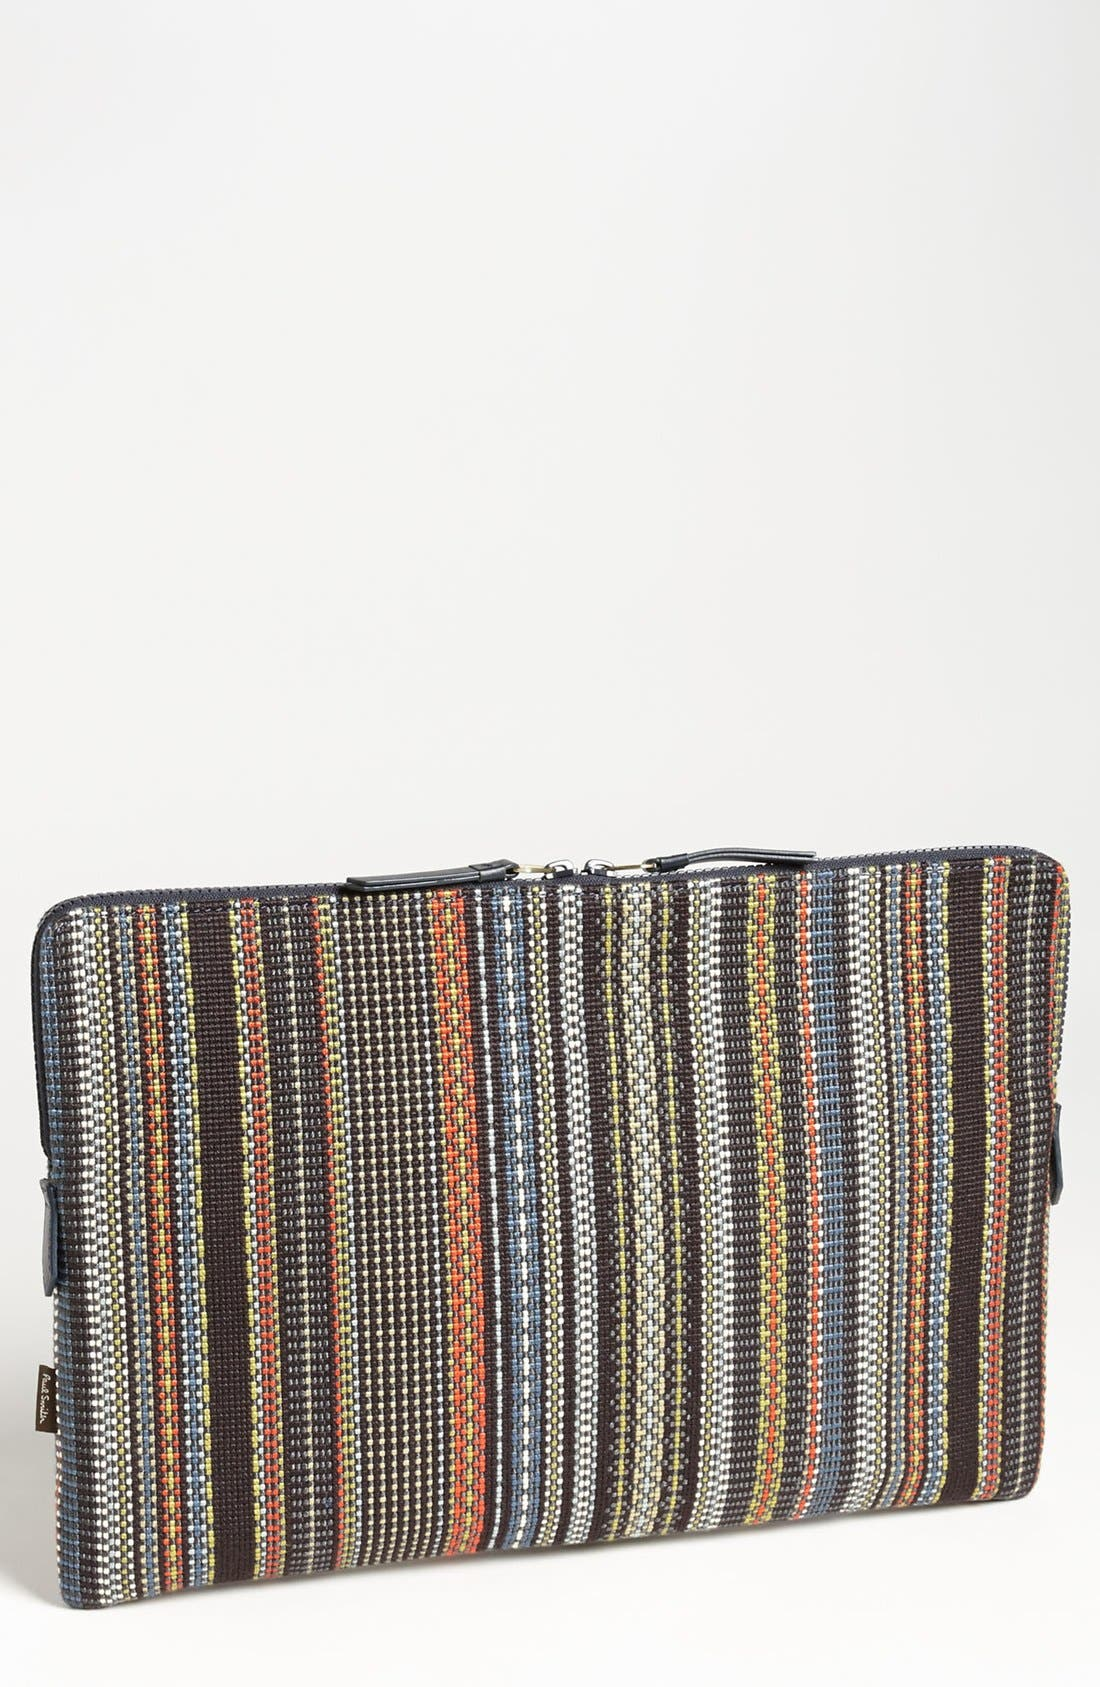 Main Image - Paul Smith Accessories Laptop Case (15 Inch)